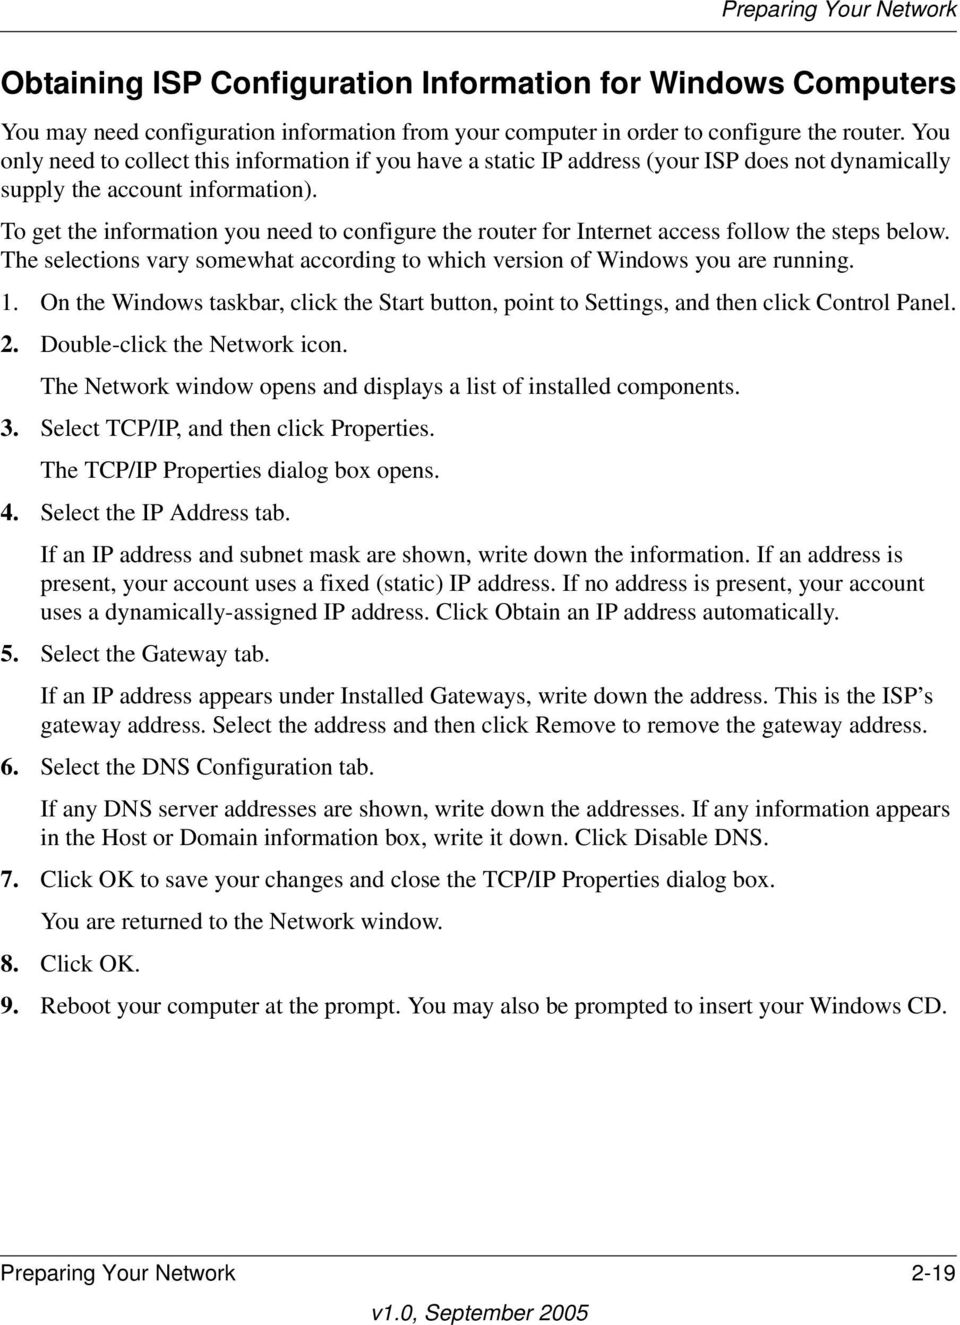 To get the information you need to configure the router for Internet access follow the steps below. The selections vary somewhat according to which version of Windows you are running. 1.